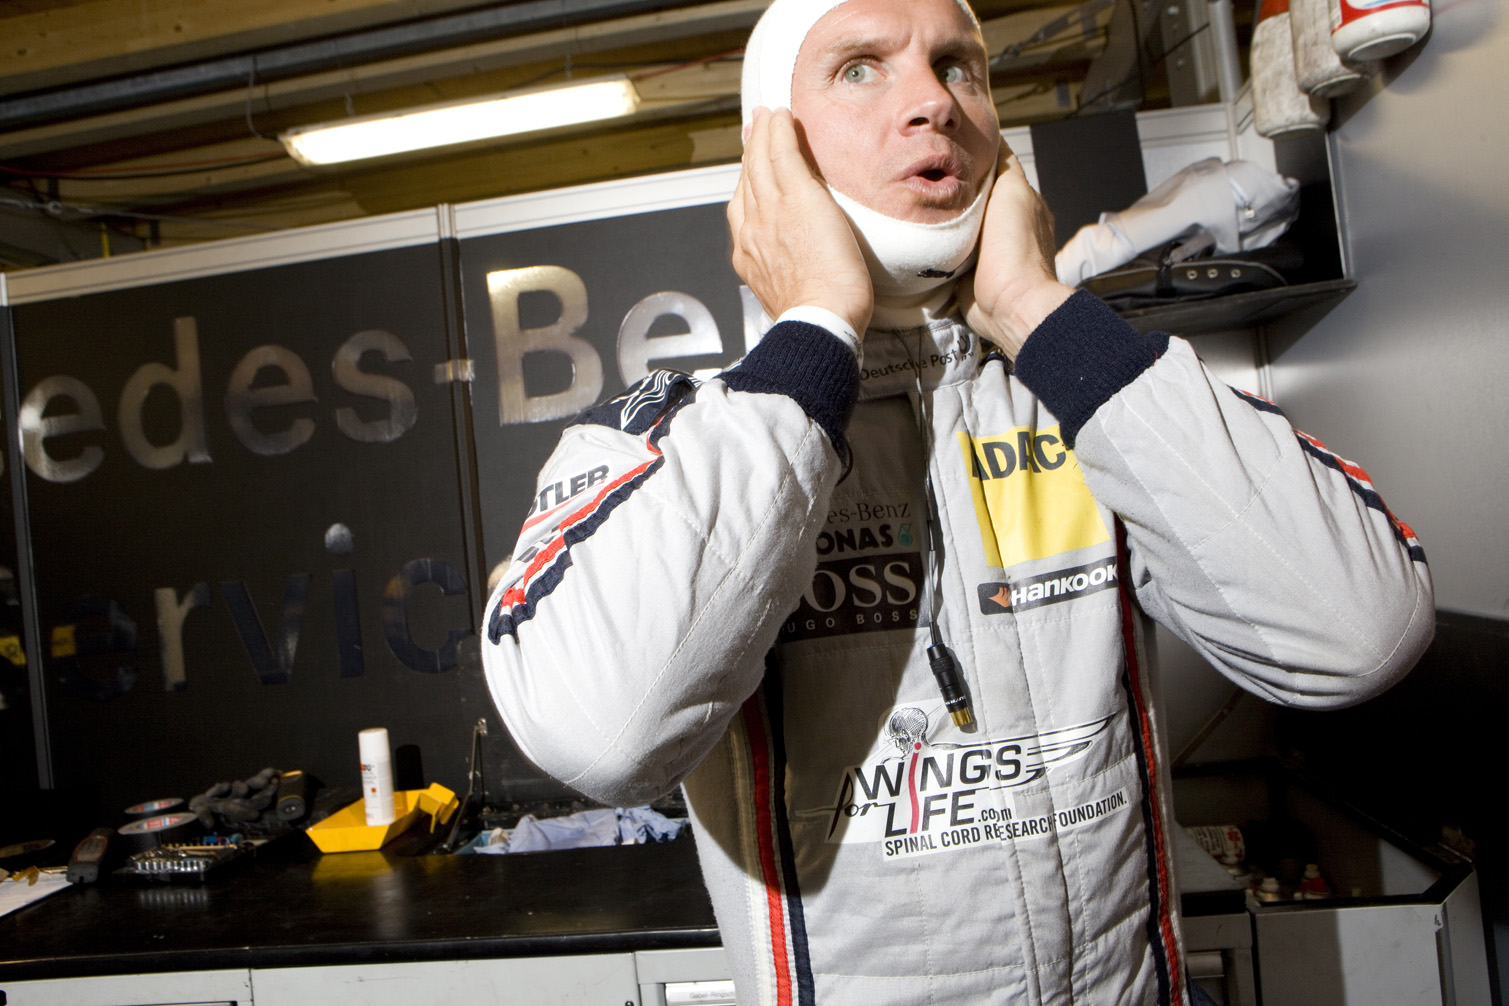 David Coulthard prepares for racing at the DTM series in Germany